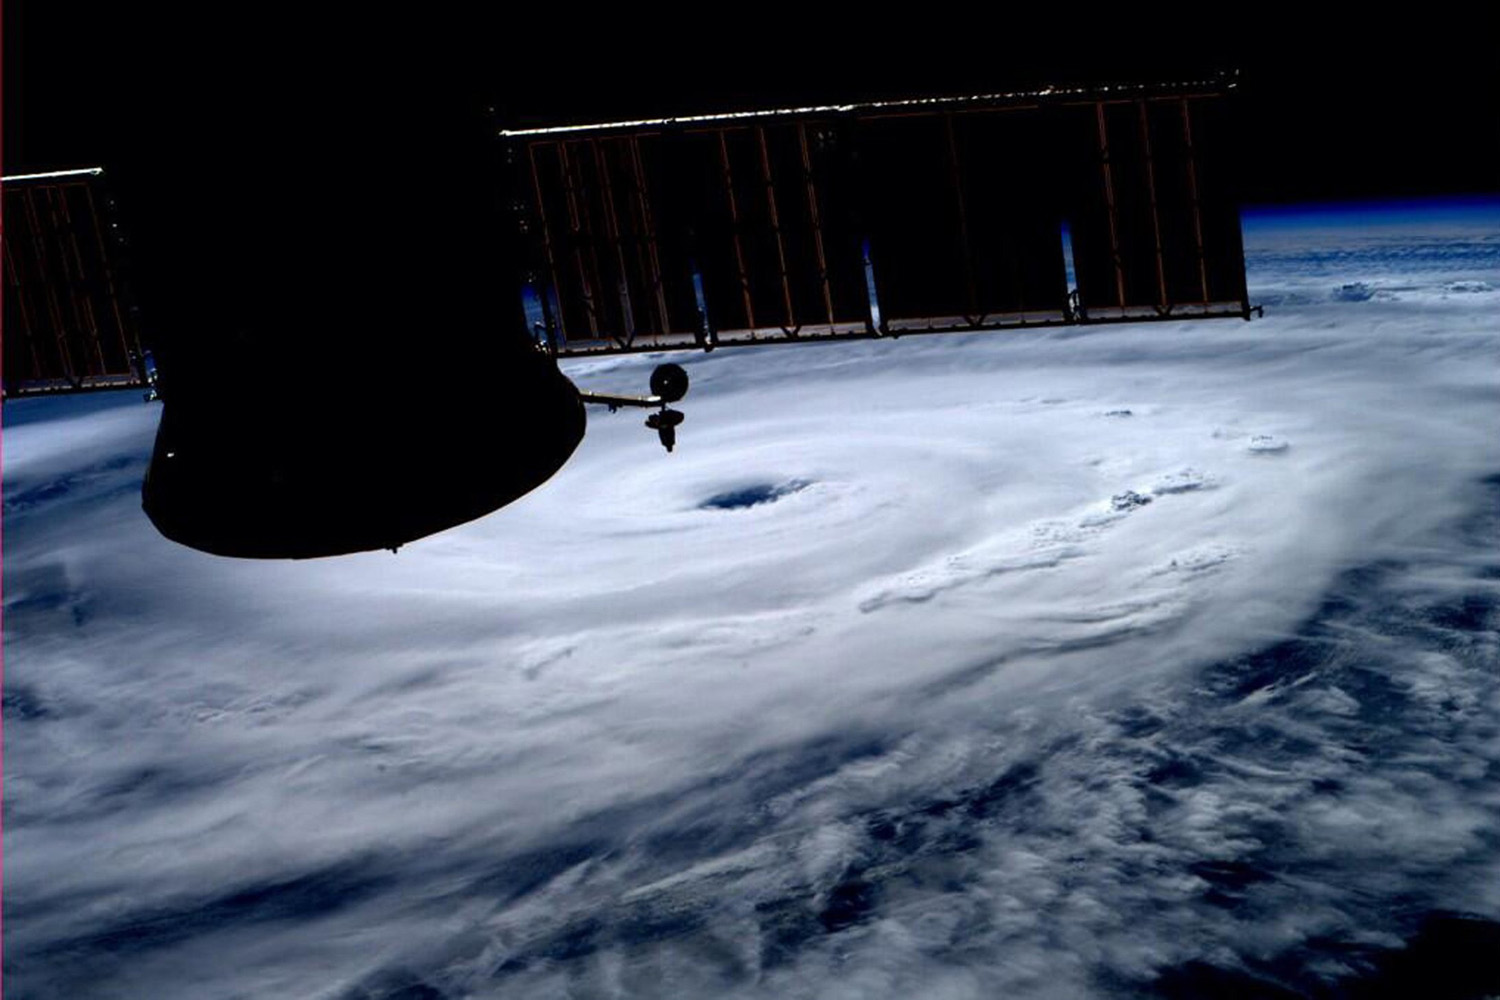 Jul. 3, 2014. The eye of Hurricane Arthur is seen over the Atlantic in this photo taken from the International Space Station.